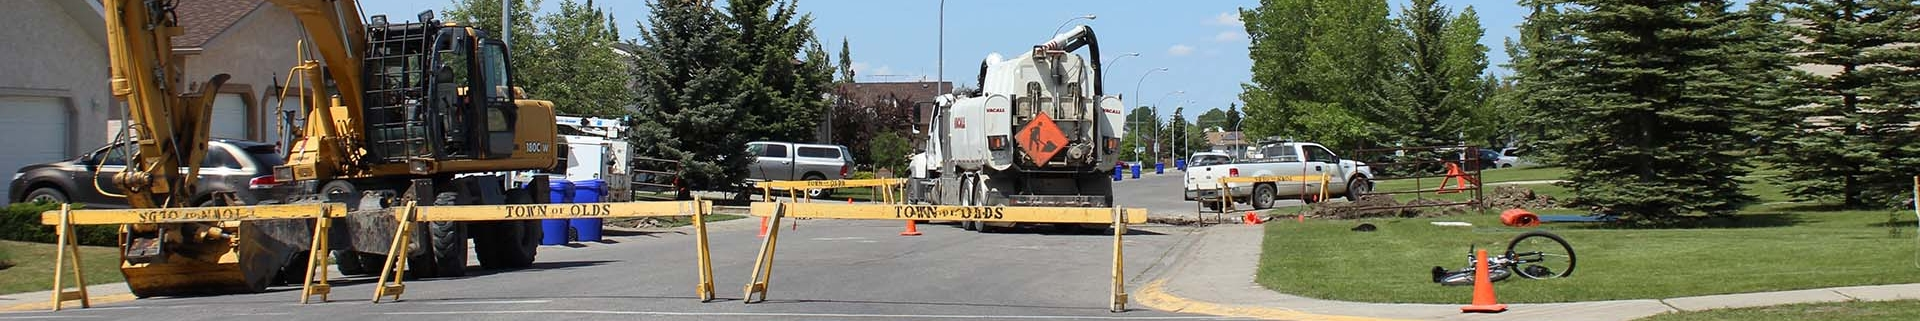 Town of Olds construction site on residential road